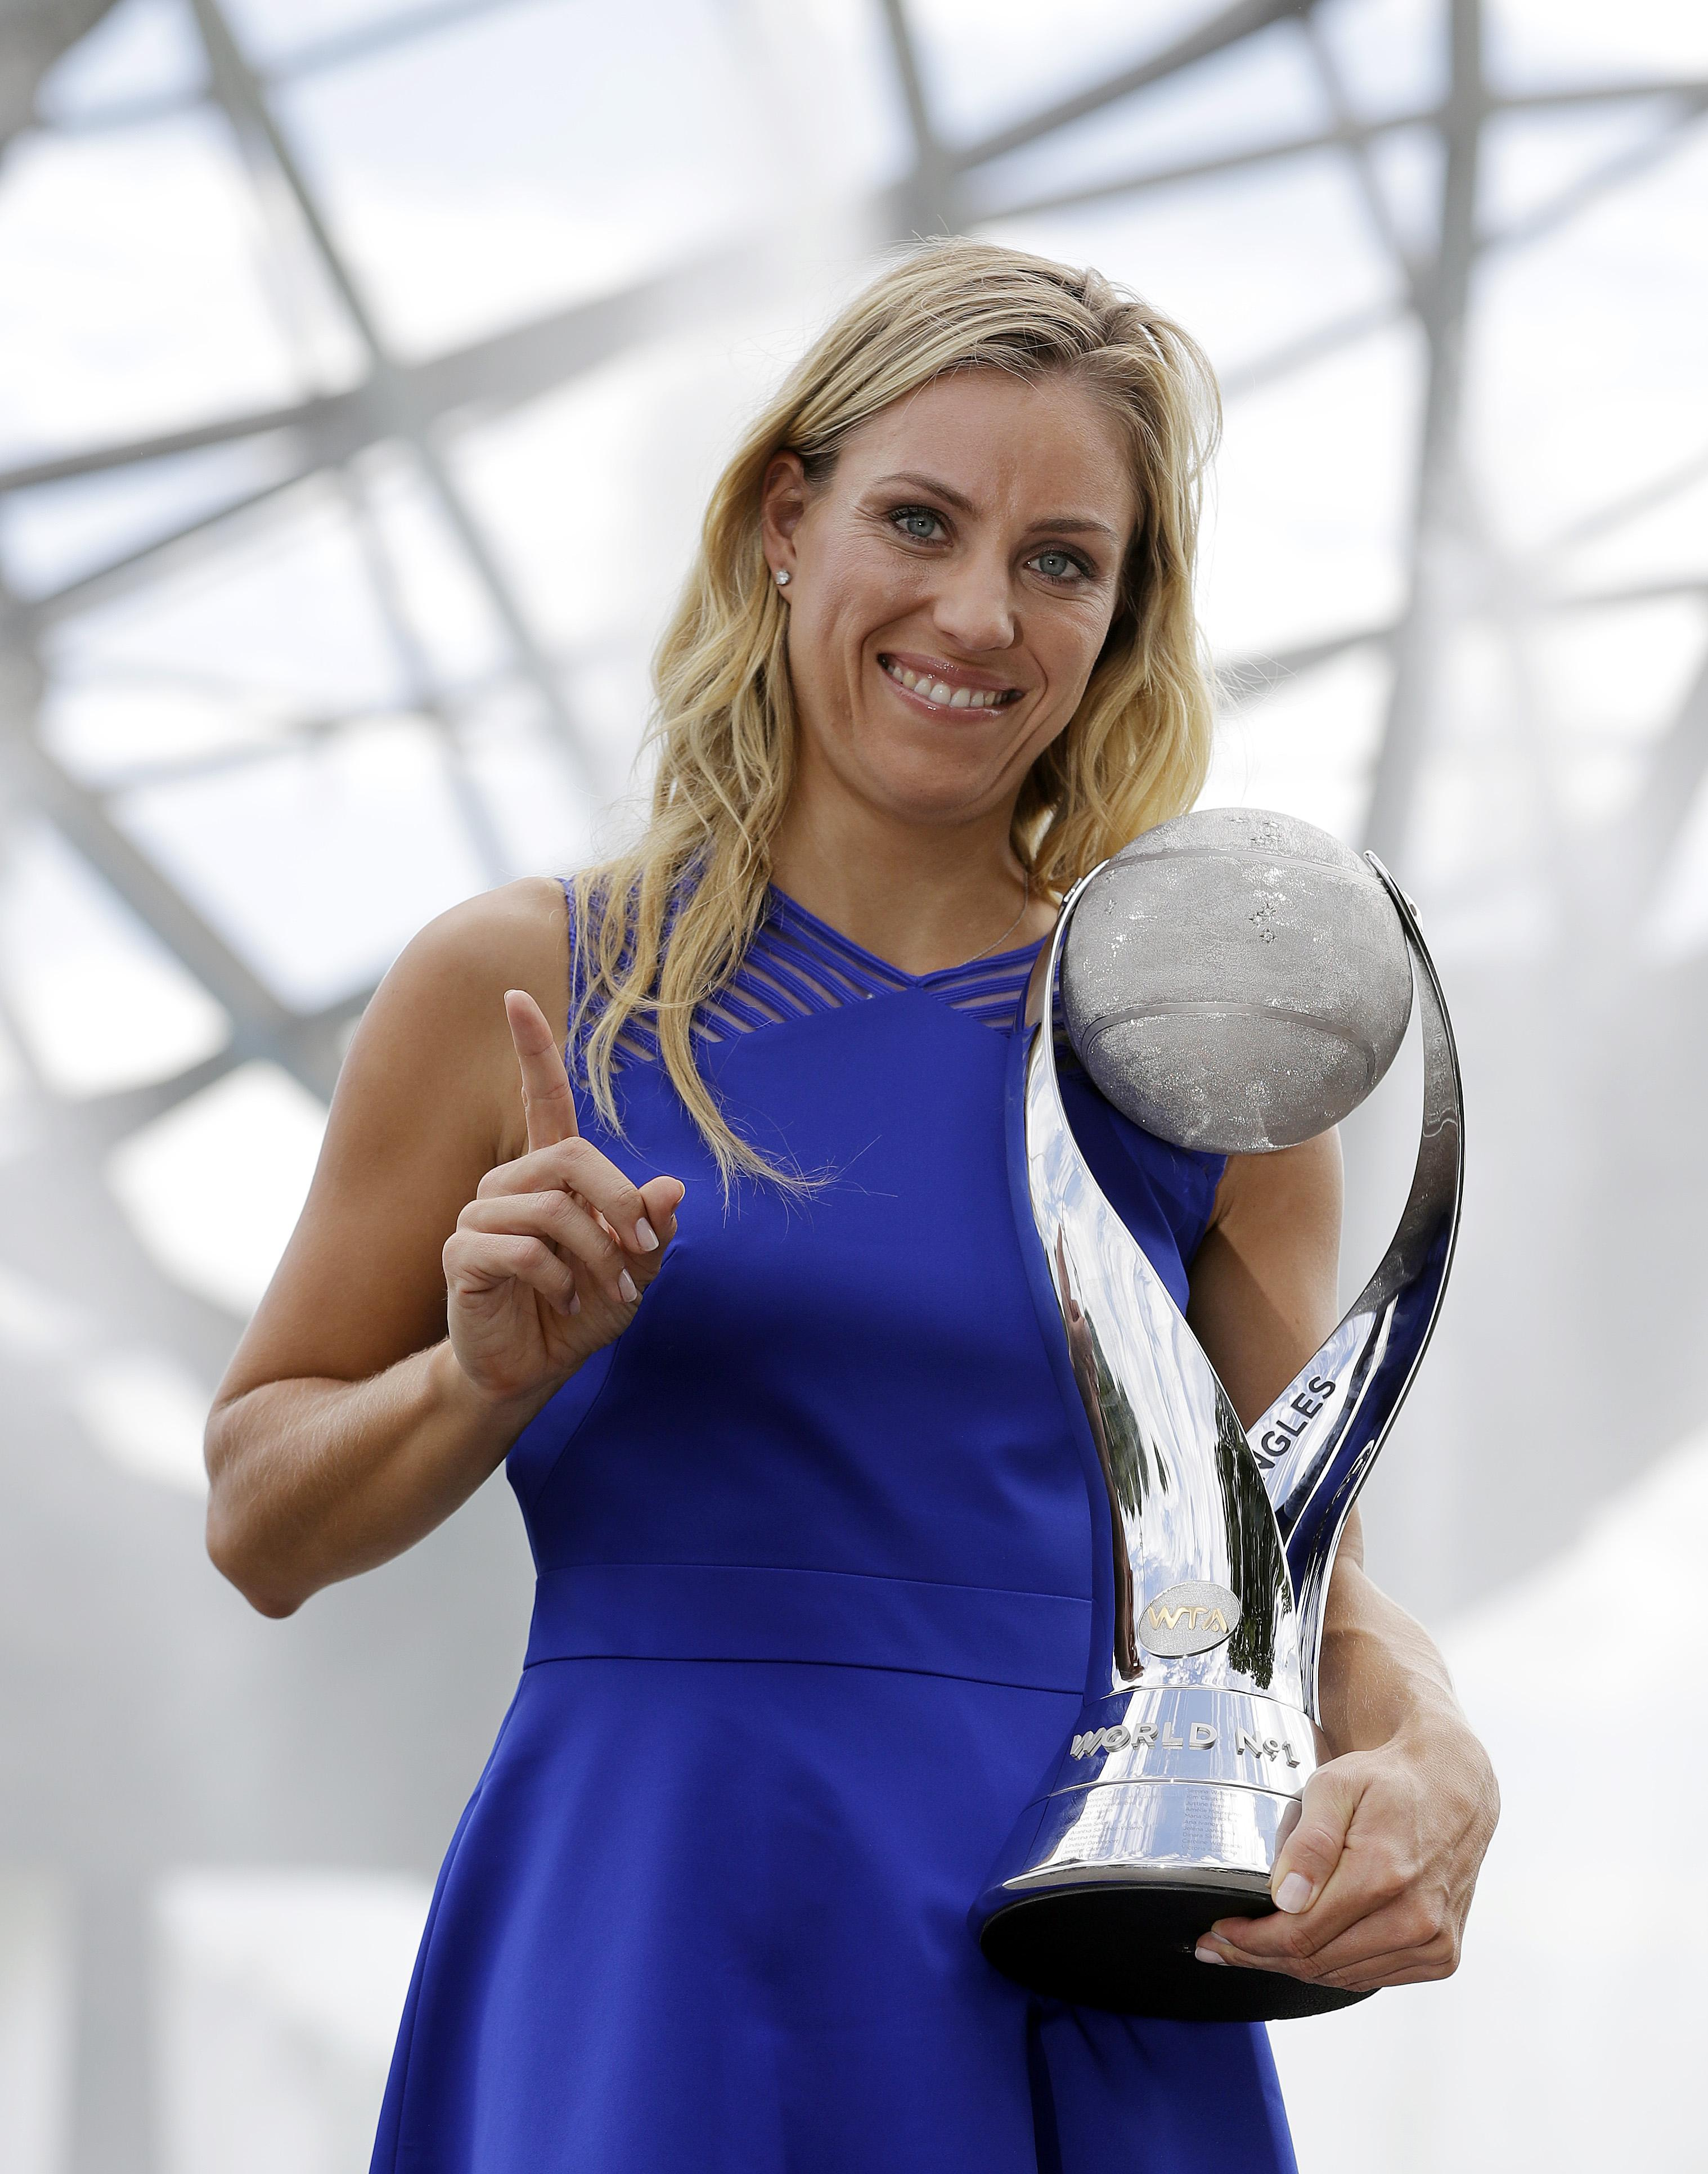 Angelique Kerber holing her trophy with one hand and pointing towards the sky